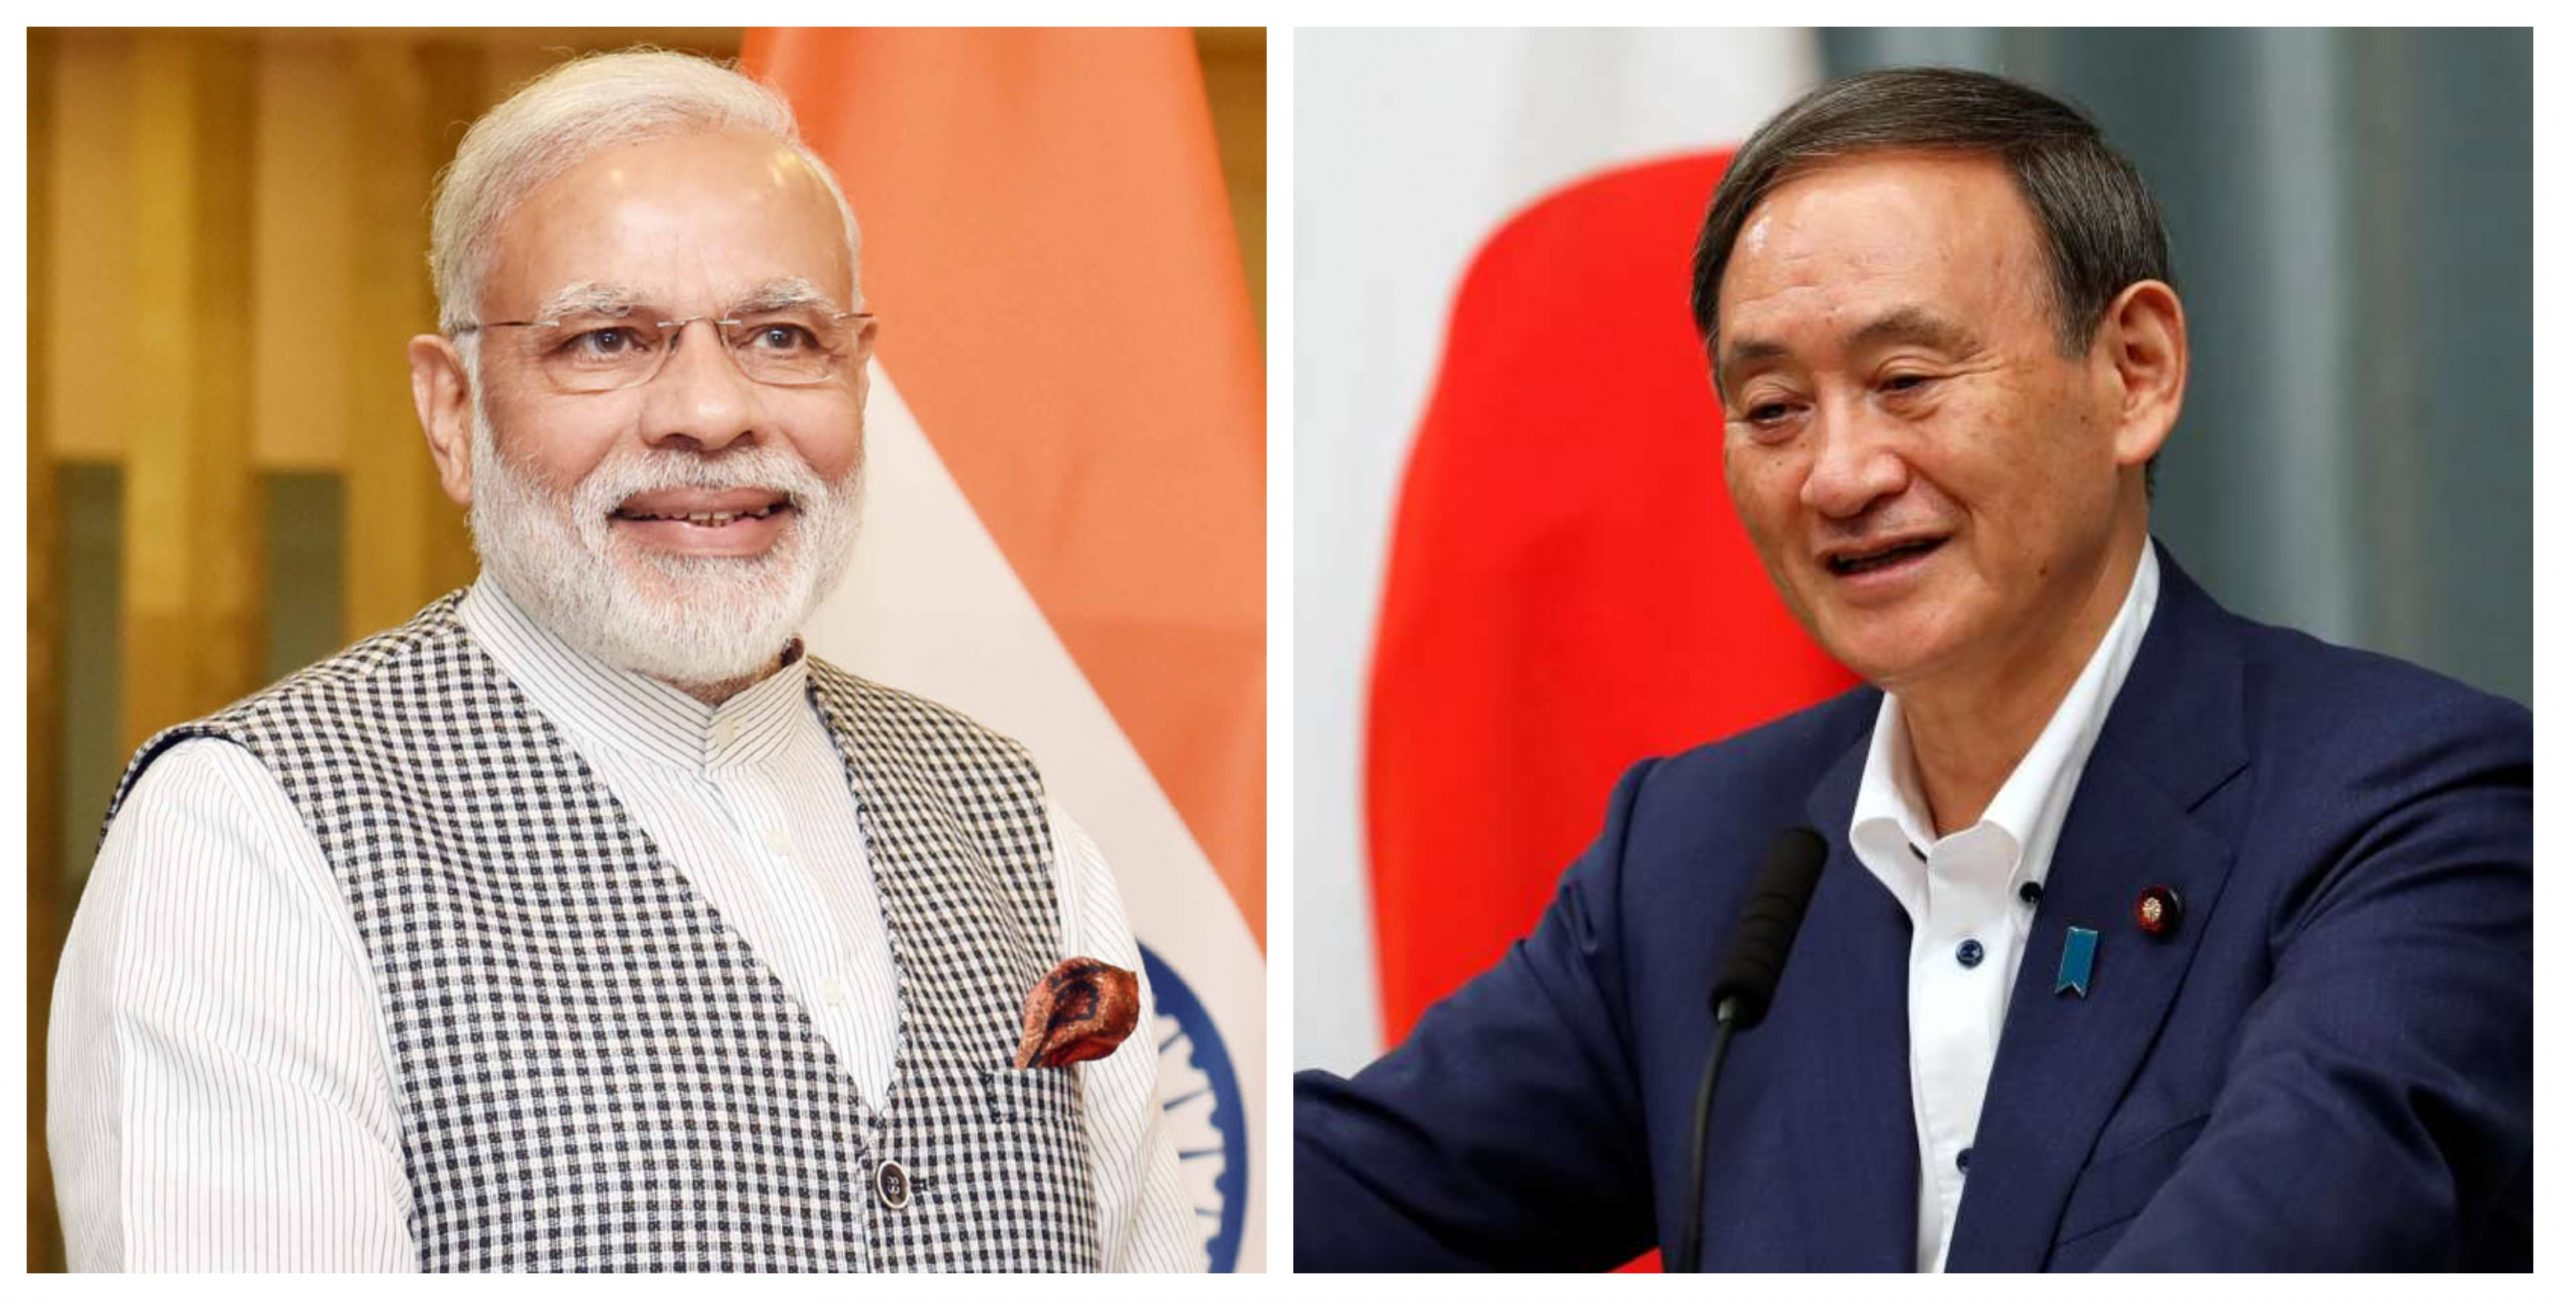 Indian Prime Minister Narendra Modi had his first conversation with the new Japanese PM Yoshihide Suga on Friday. The Indo-Pacific was  one of the areas of focus in their conversation.